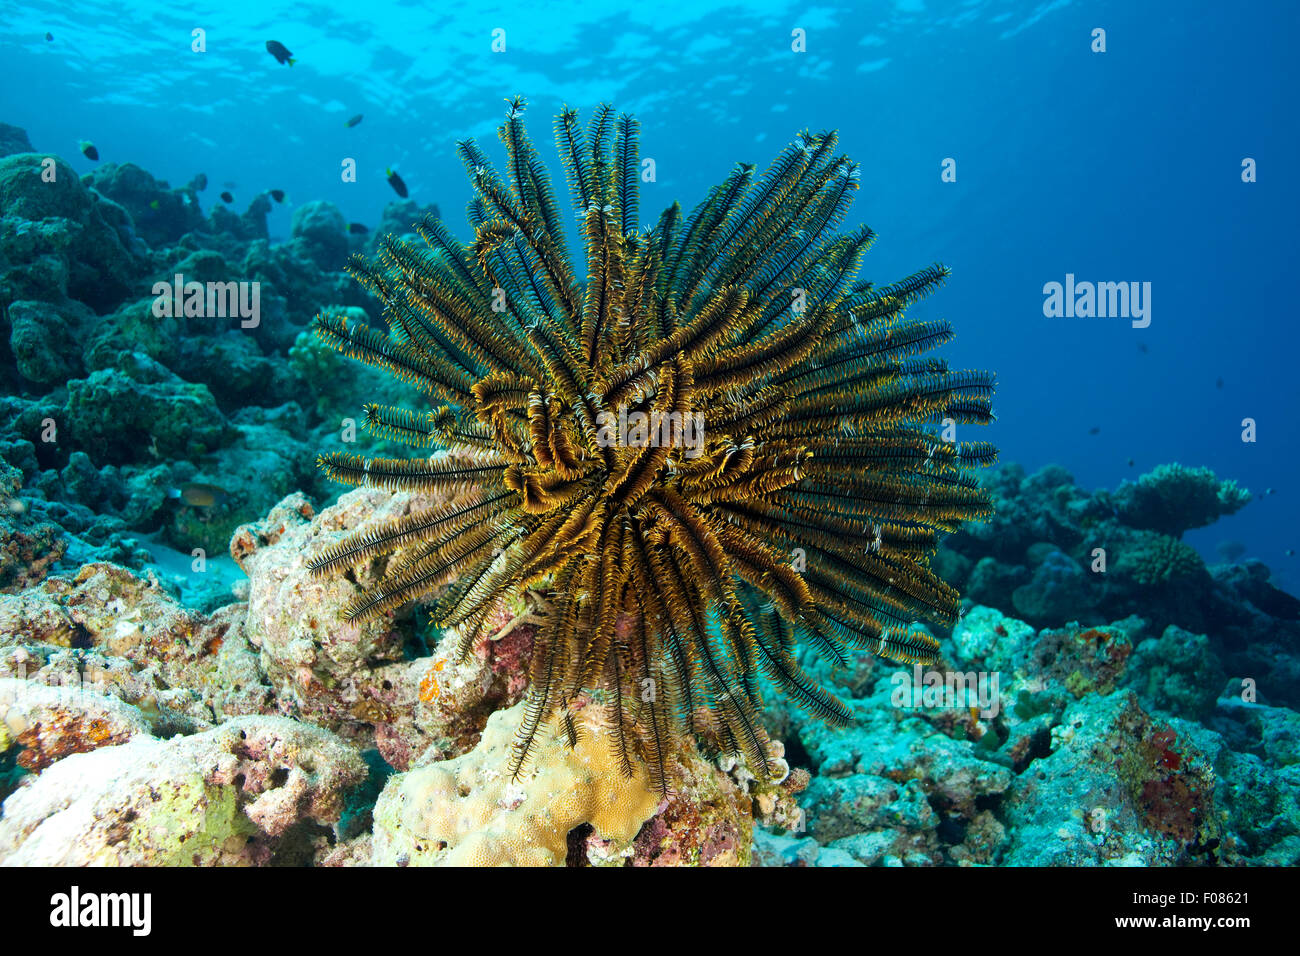 Featherstar on Coral Reef, Comanthina schlegeli, Ari Atoll, Maldives - Stock Image